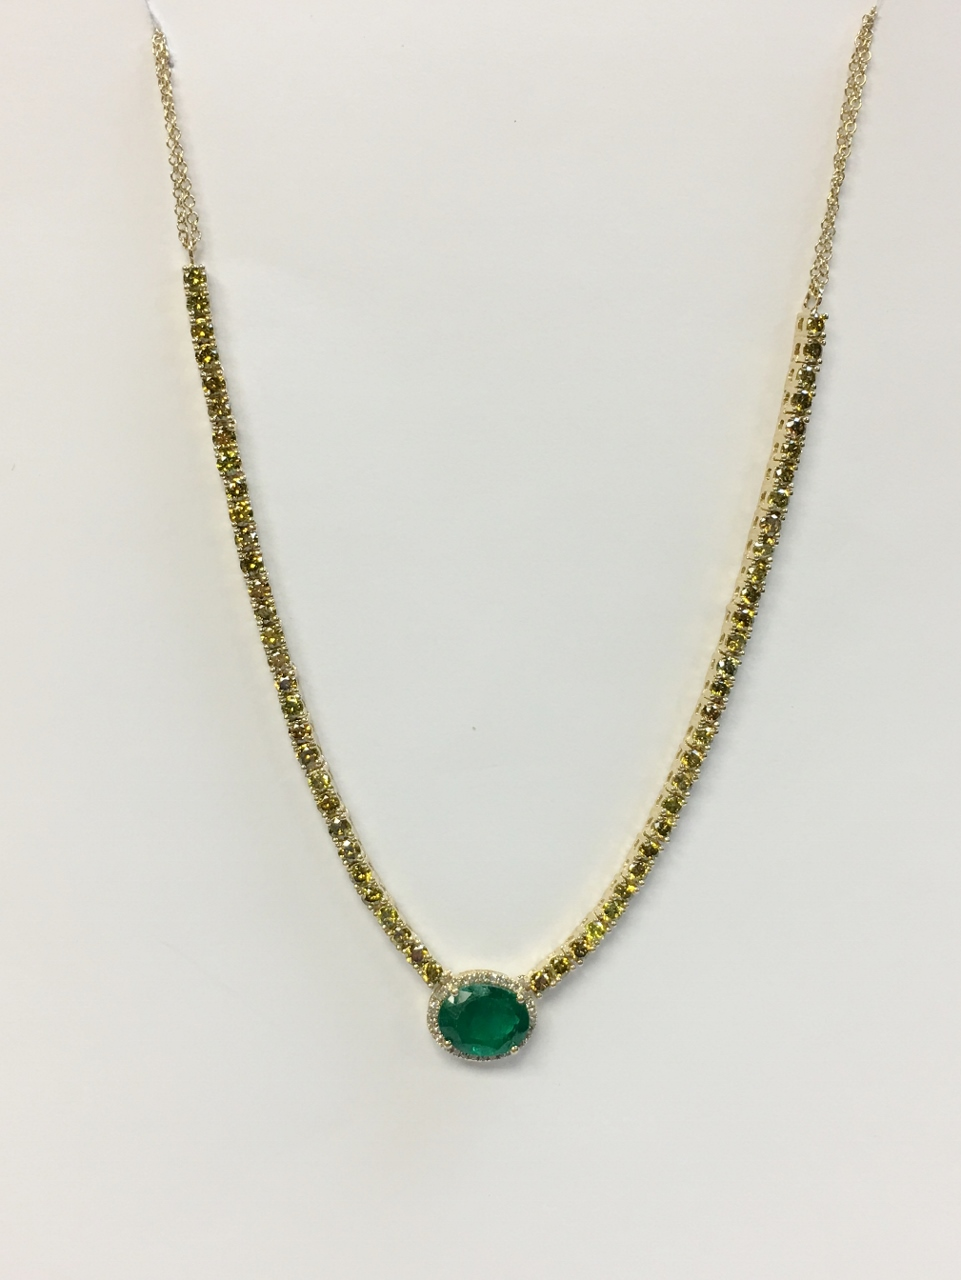 2 Carats Emerald & Yellow Diamond Necklace